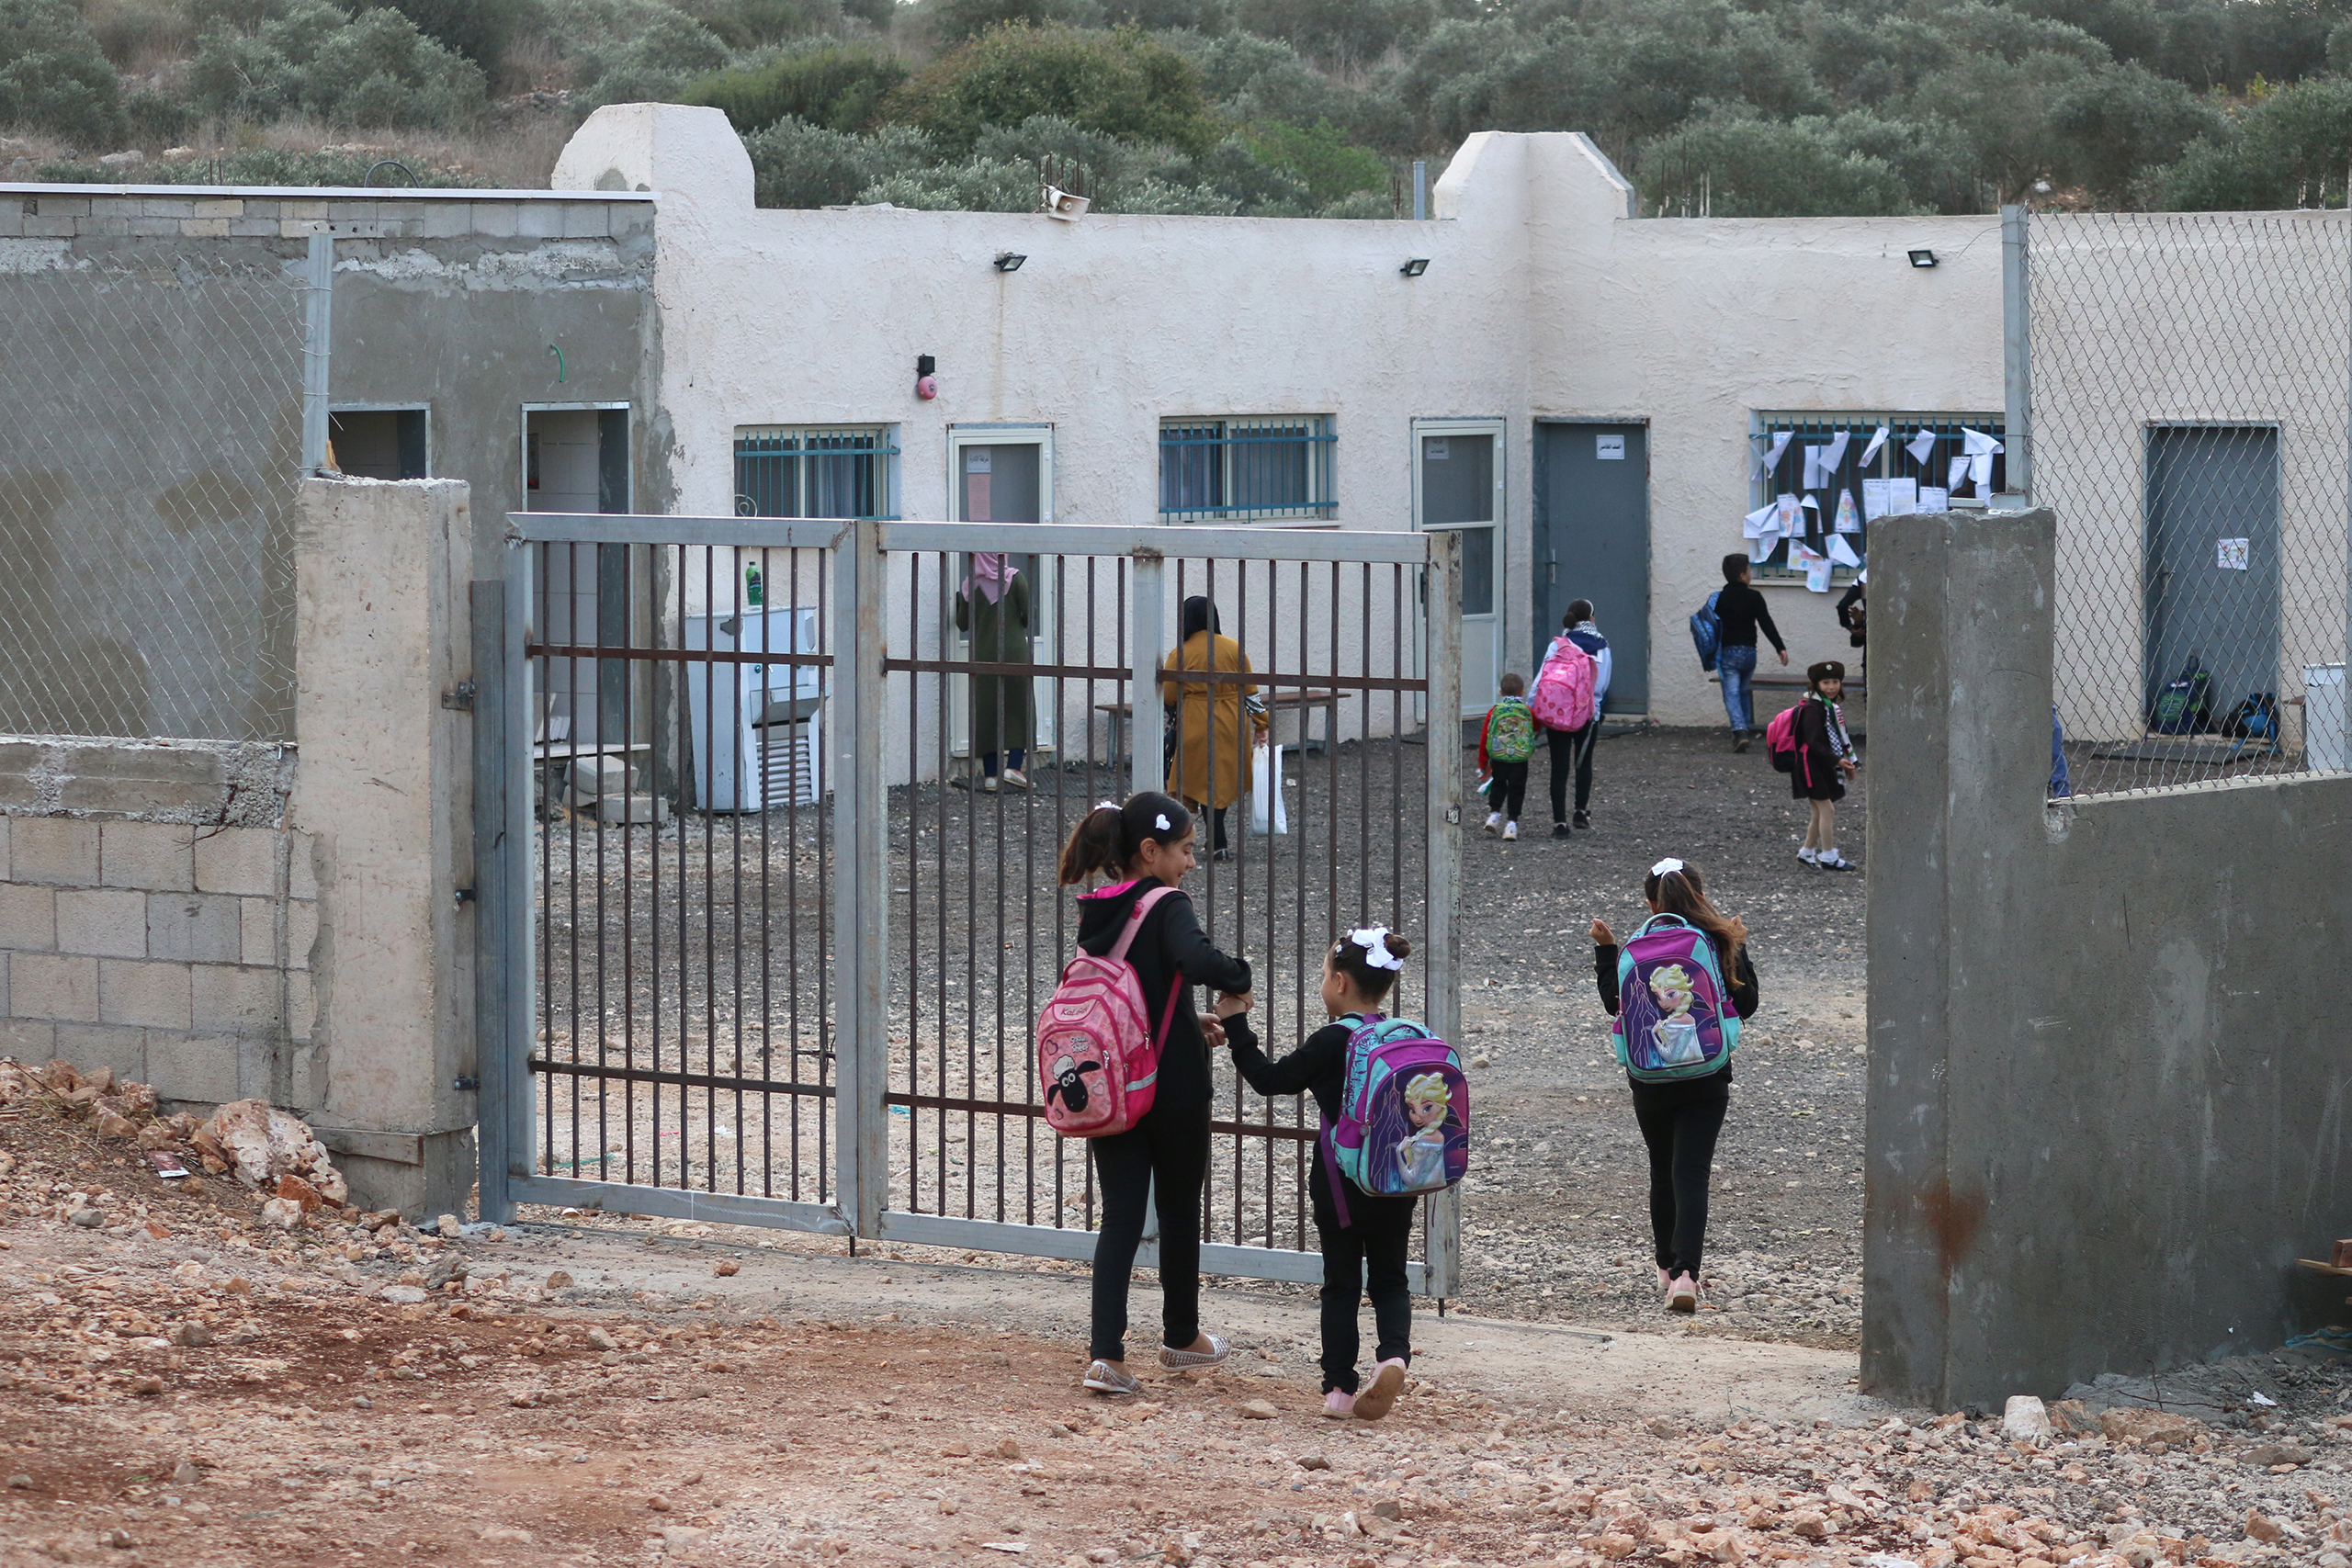 Palestinian students enter their school in Dahr Al-Maleh on November 10, 2019, which is under threat of demolition by the Israeli military. The elementary school was established so younger students in the village could avoid the daily journey through the Israeli military checkpoint to reach neighboring Tura Al-Gharbiya village. (Photo: DCIP / Ahmad Al-Bazz)